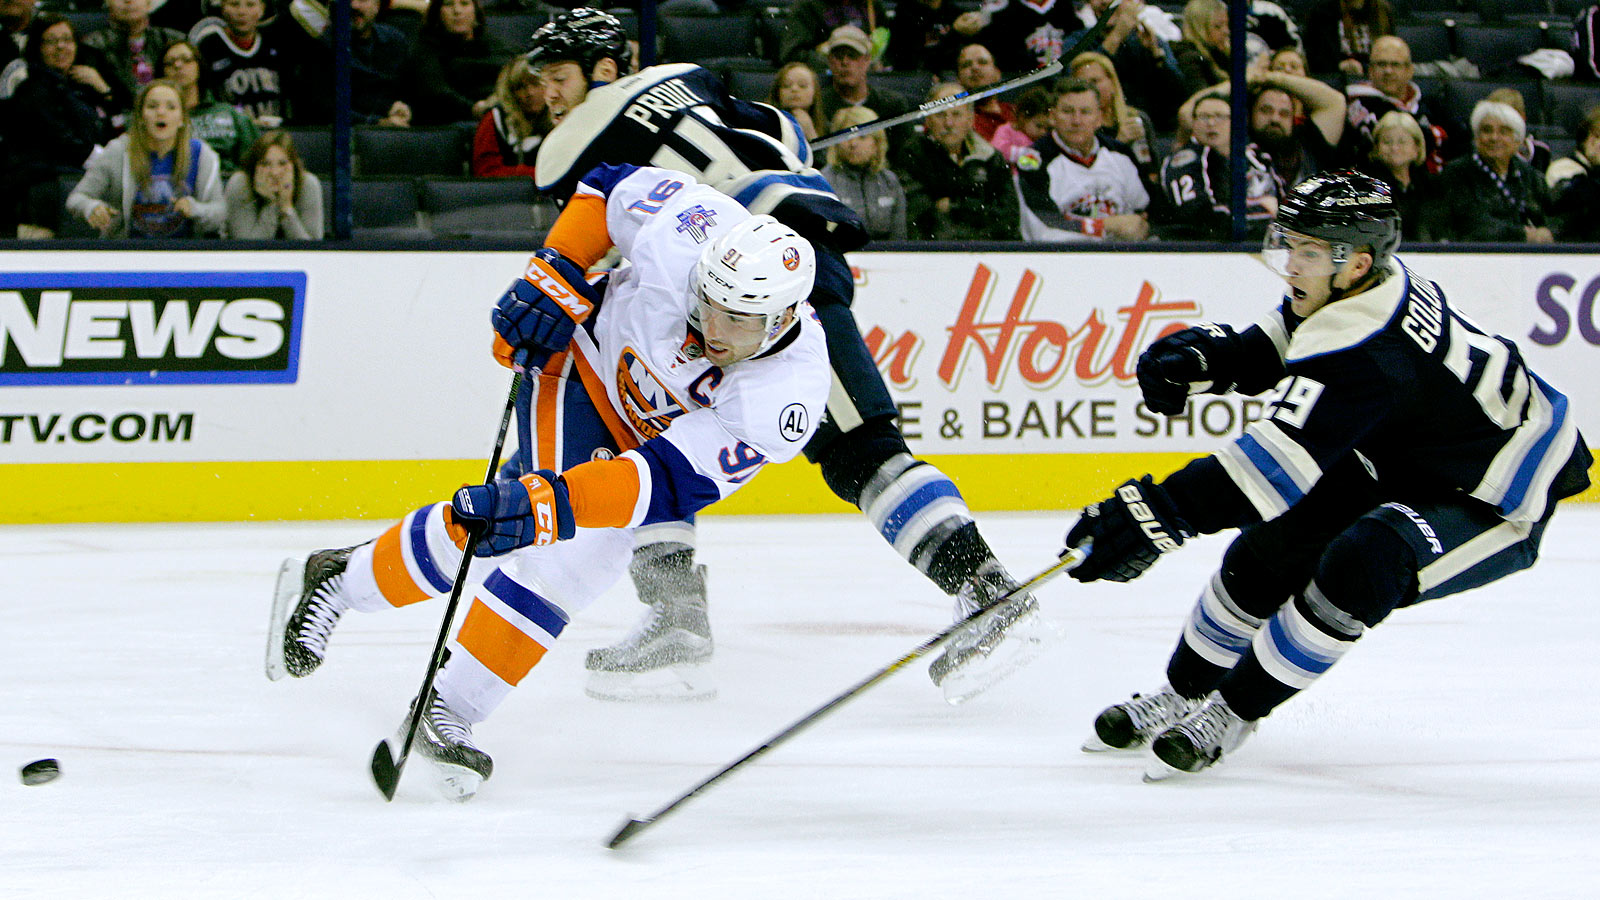 Surging Islanders' shutout drops struggling Blue Jackets to 0-7